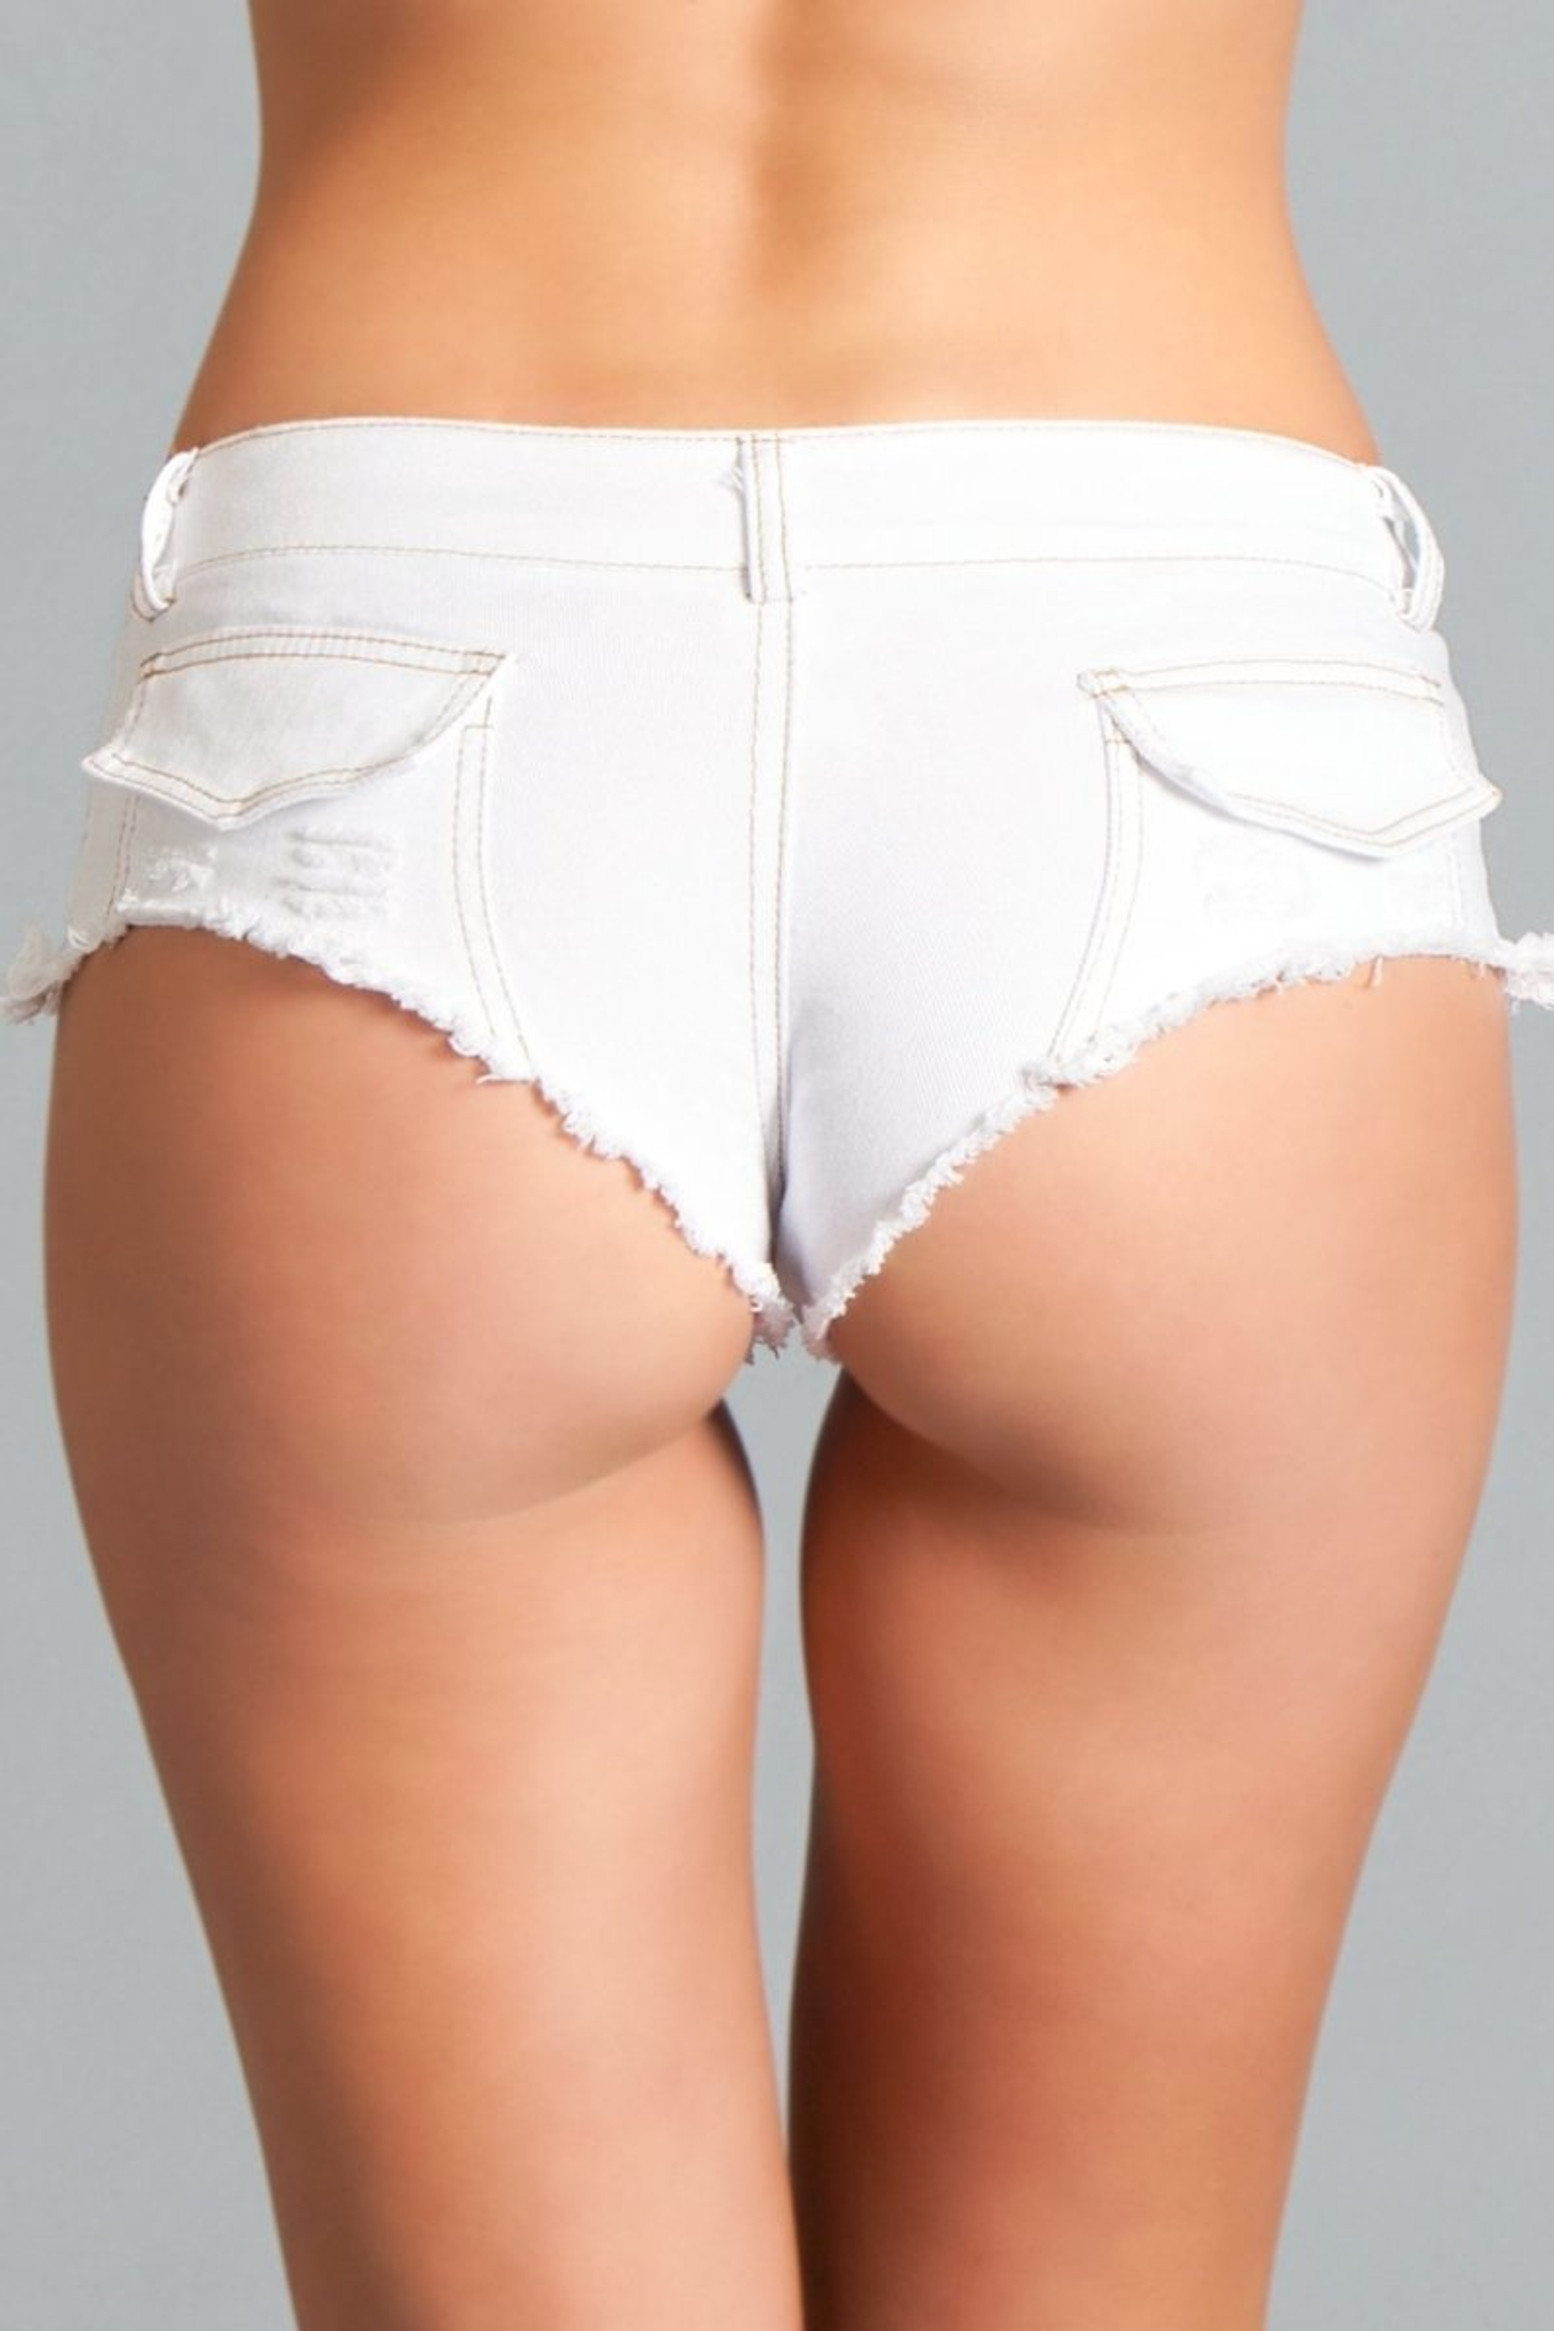 BWJ3WT Baby Got Back Booty Shorts - White